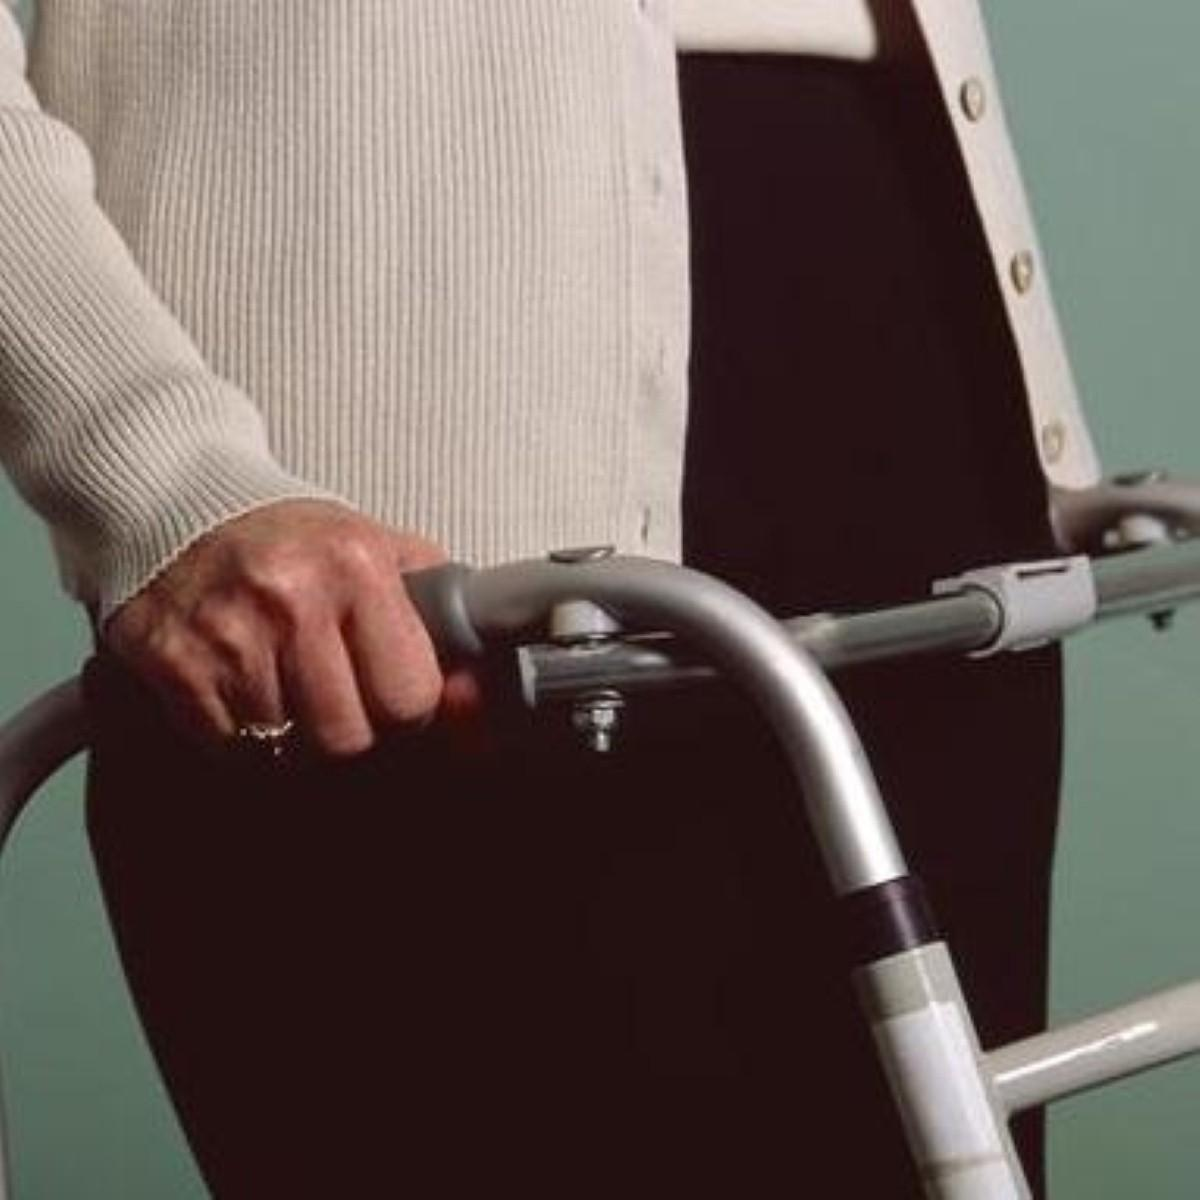 People with MS 'want more respite care services'